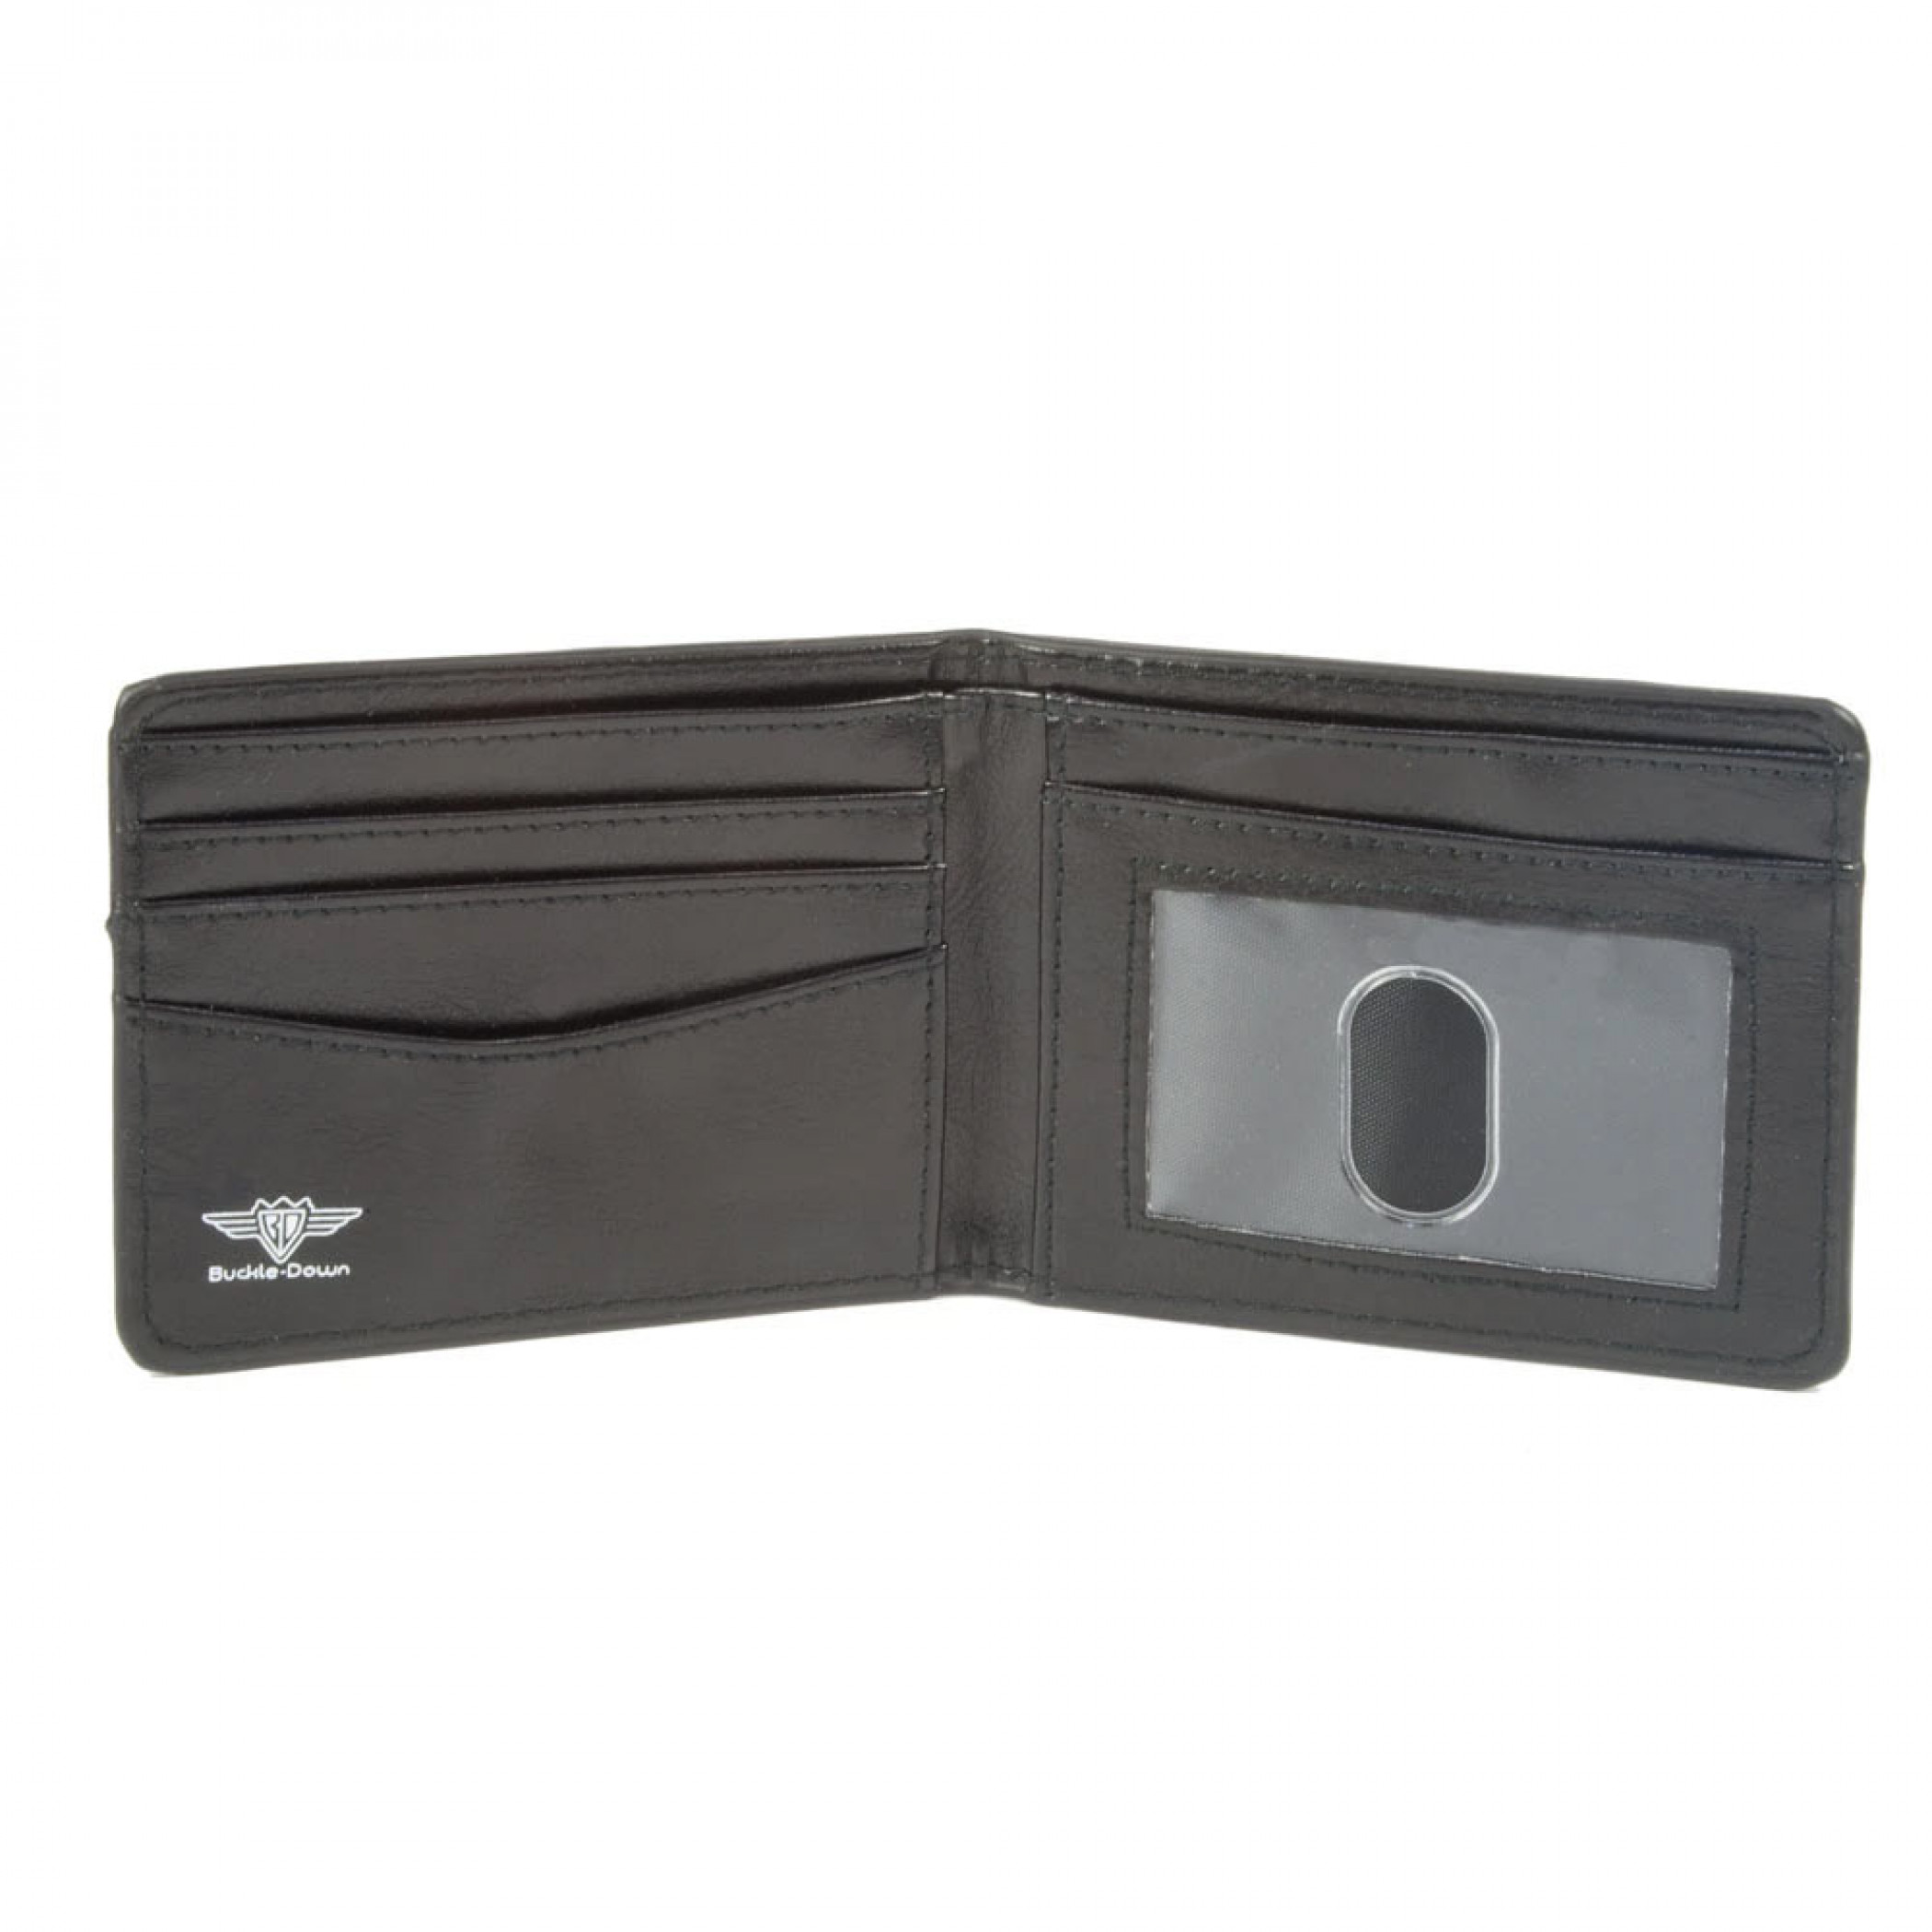 Star Wars Rebel Pilot Wallet